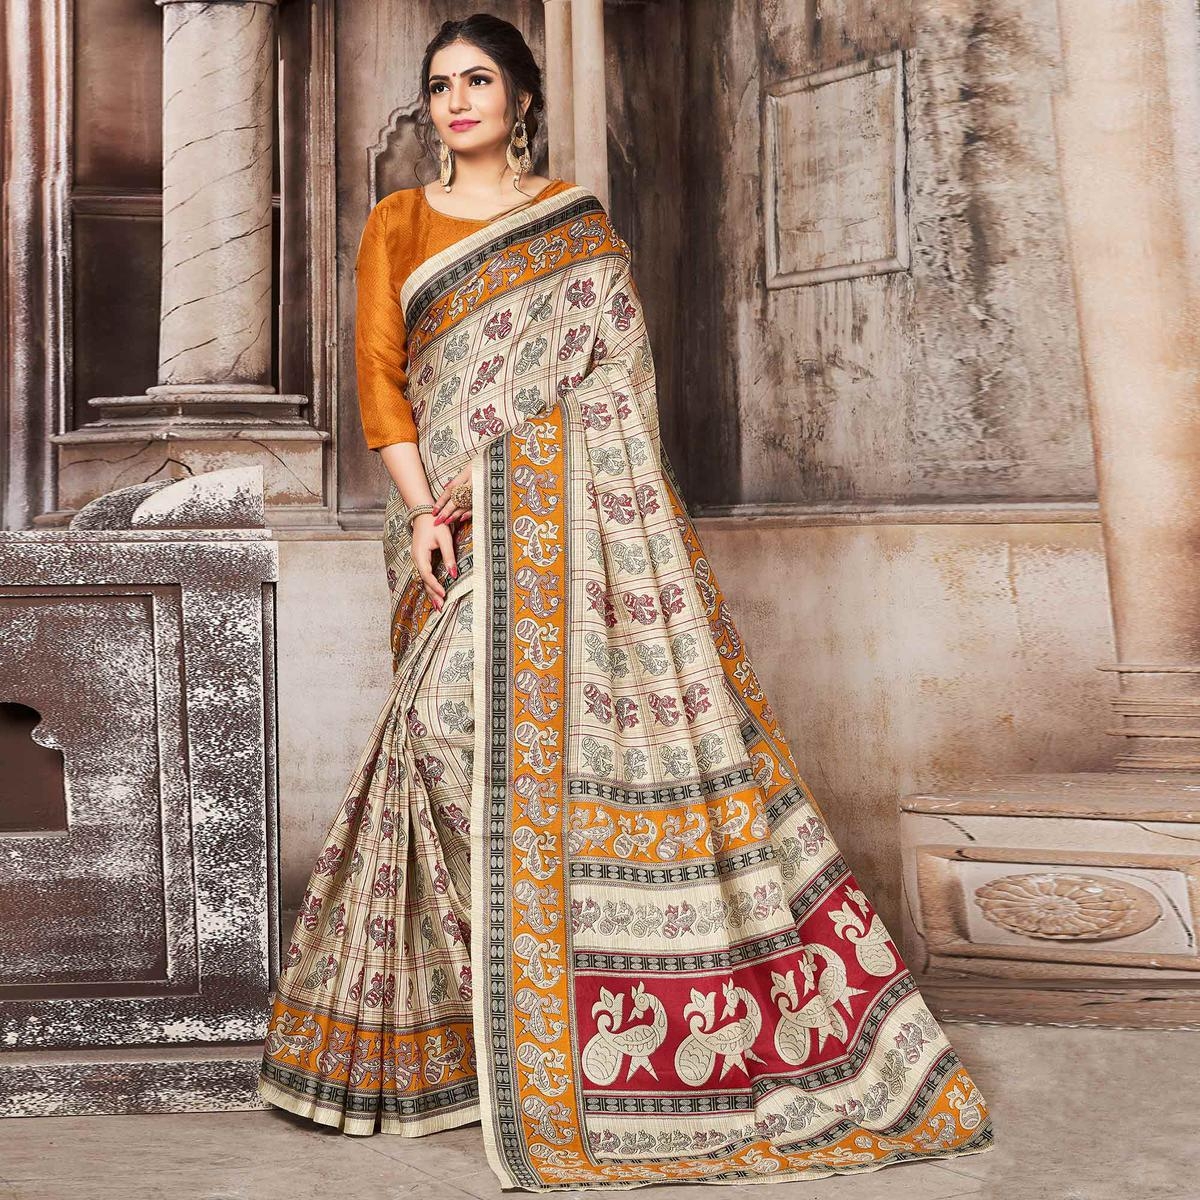 Eye-Catching Cream-Yellow Colored Madhubani Printed Khadi Silk Saree